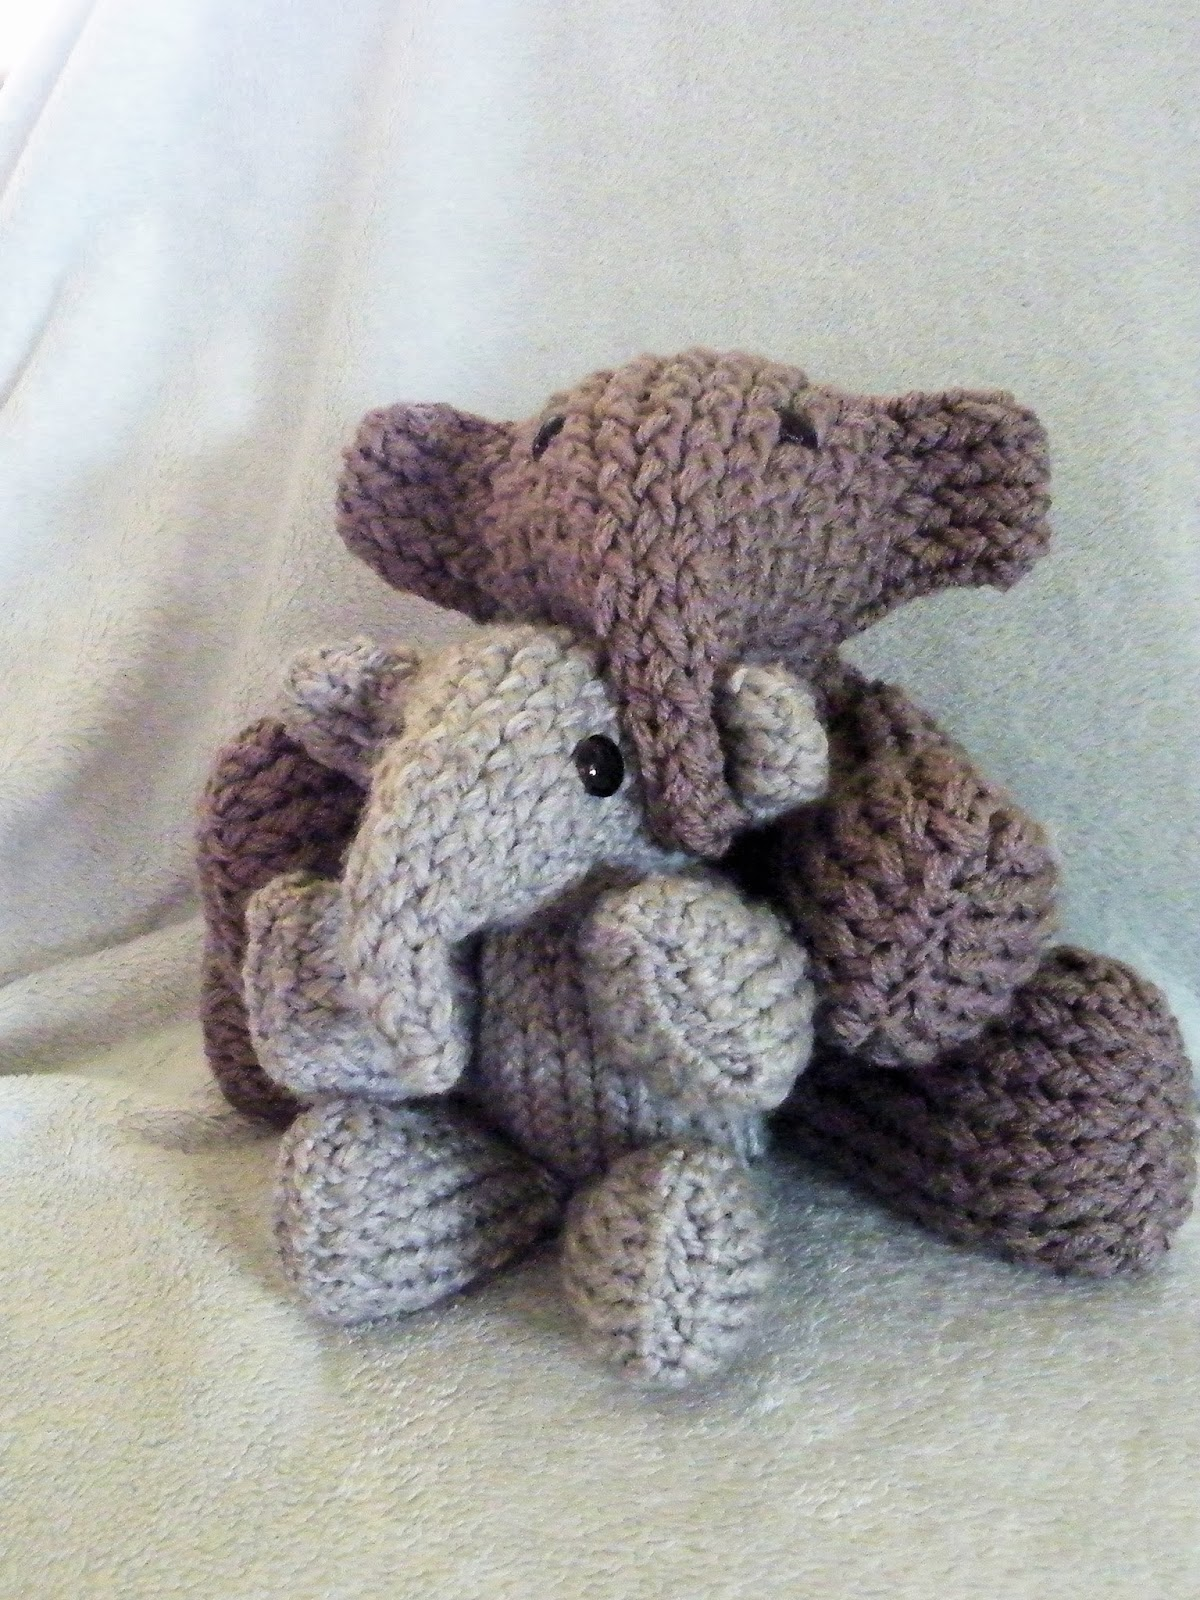 Knitting Patterns For Stuffed Dogs : Elephant - LoomaHat.com